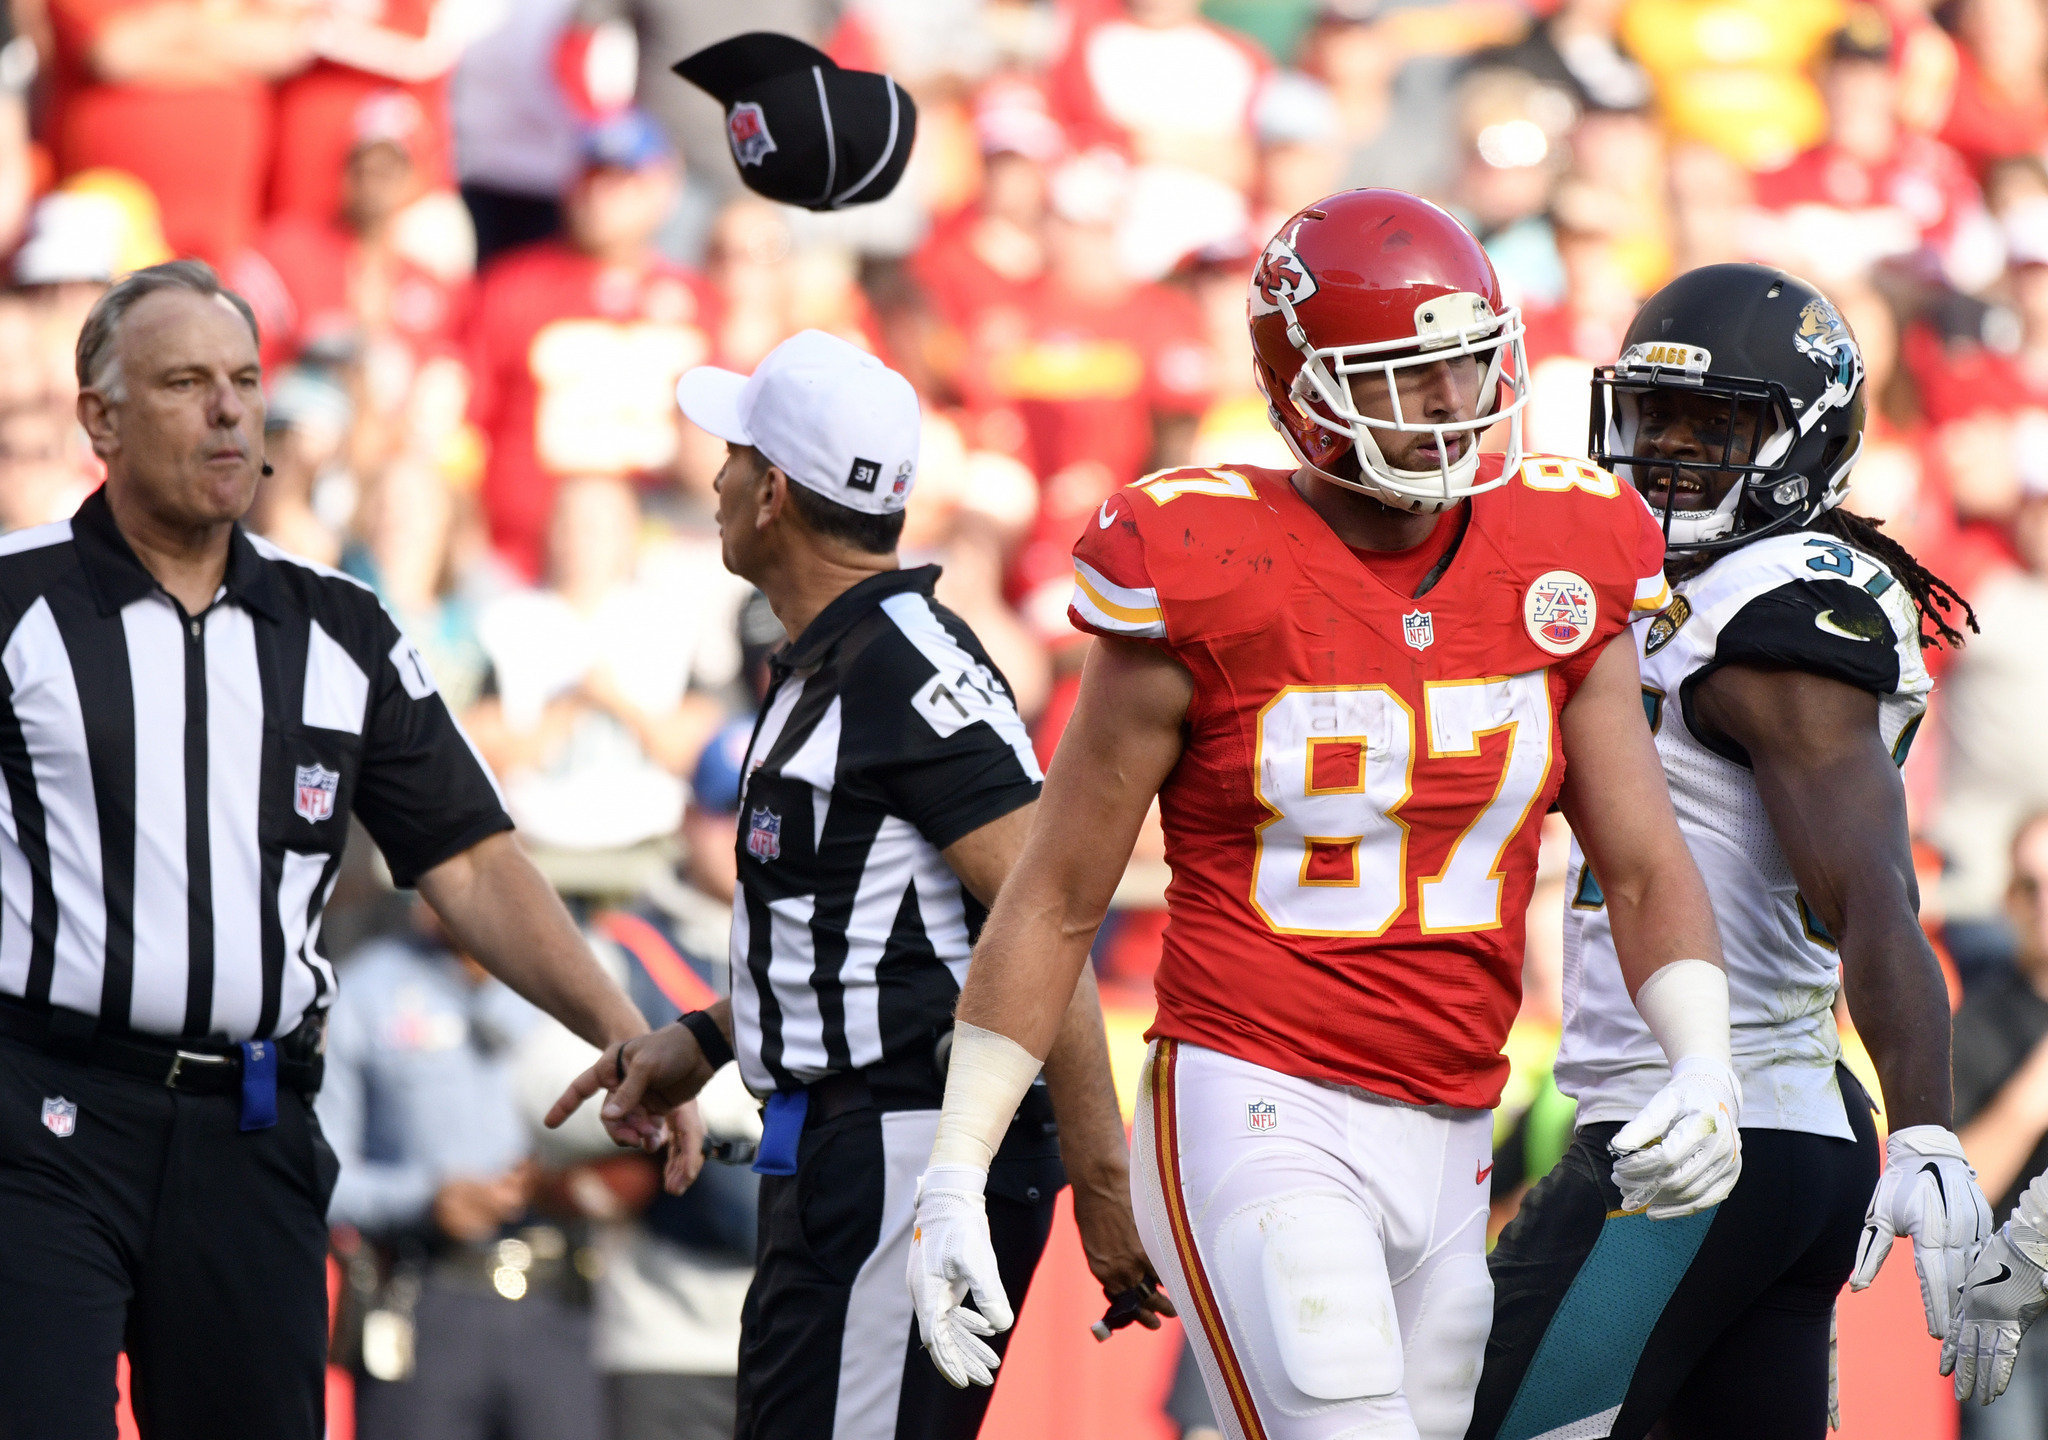 travis kelce towel throw at ref gets him ejected